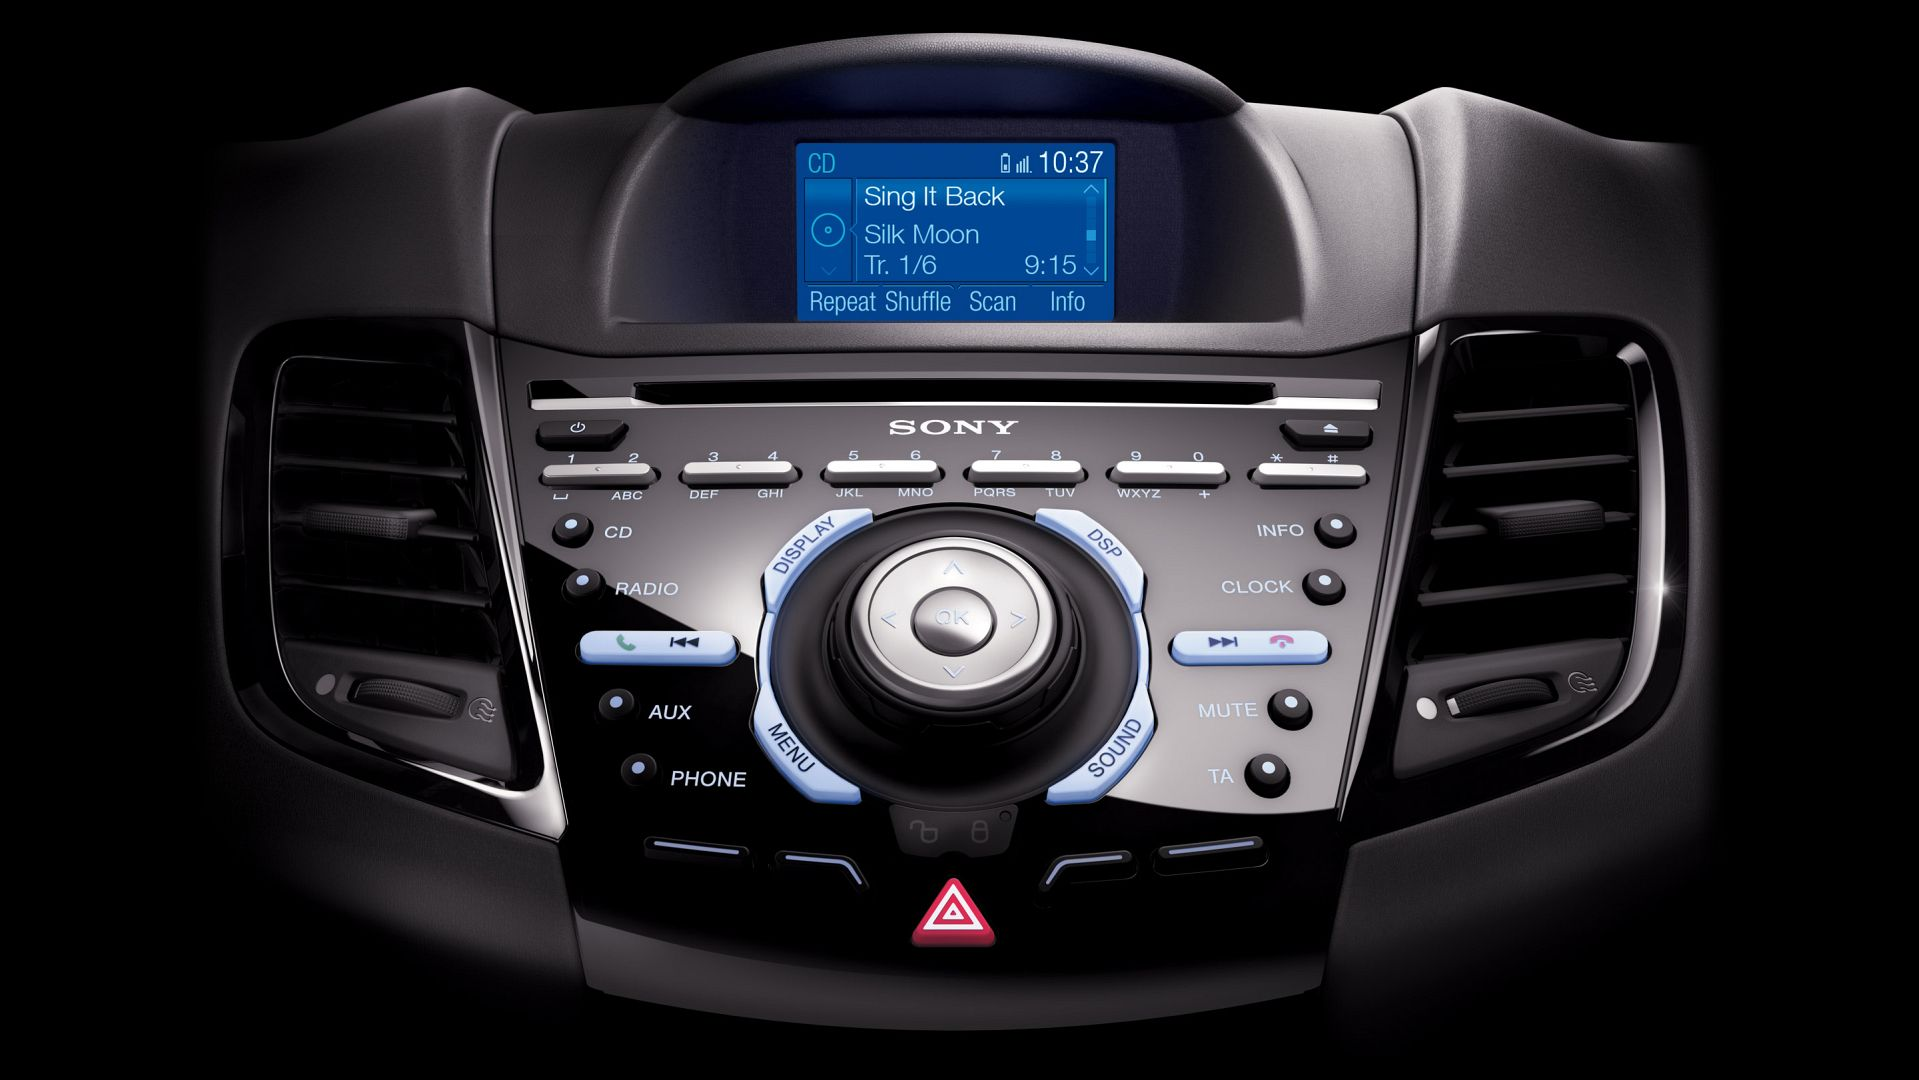 2014 FORD Fiesta ST Review - autoevolution Ford Sony Audio System Review on ford focus stereo system, 2012 ford focus audio system, ford jbl audio system, ford edge audio system, pioneer car system, sony car system,